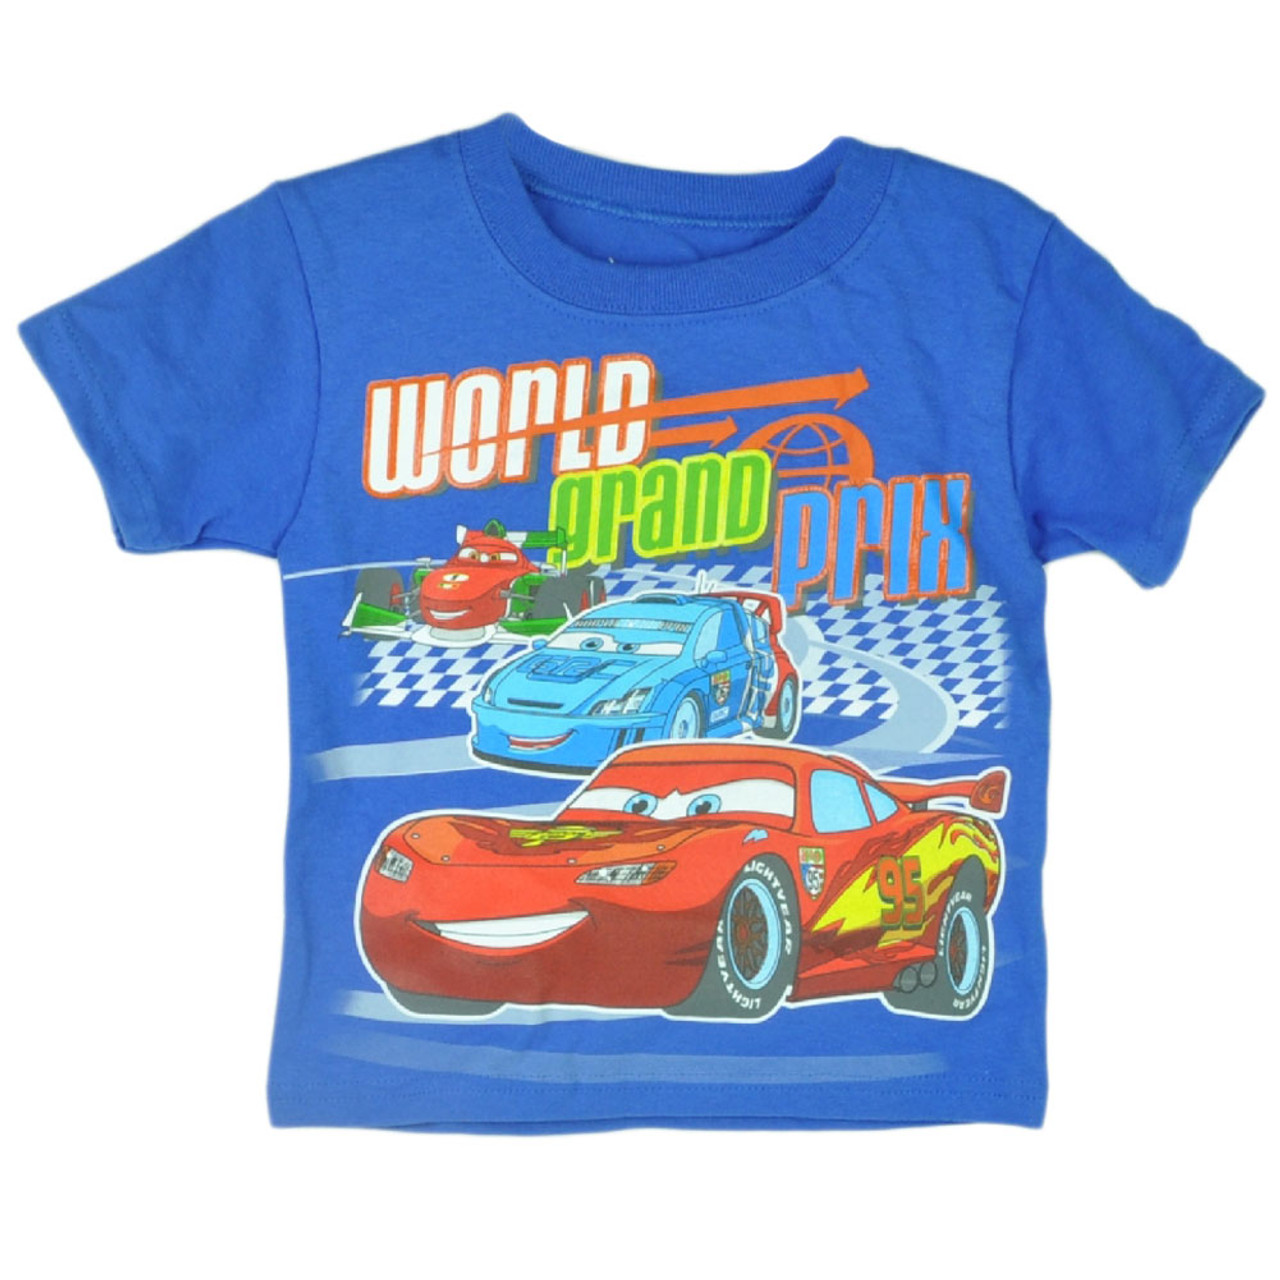 Disney Pixar Cars 2 Movie Animation World Grand Prix Boys Tshirt Tee Race Black